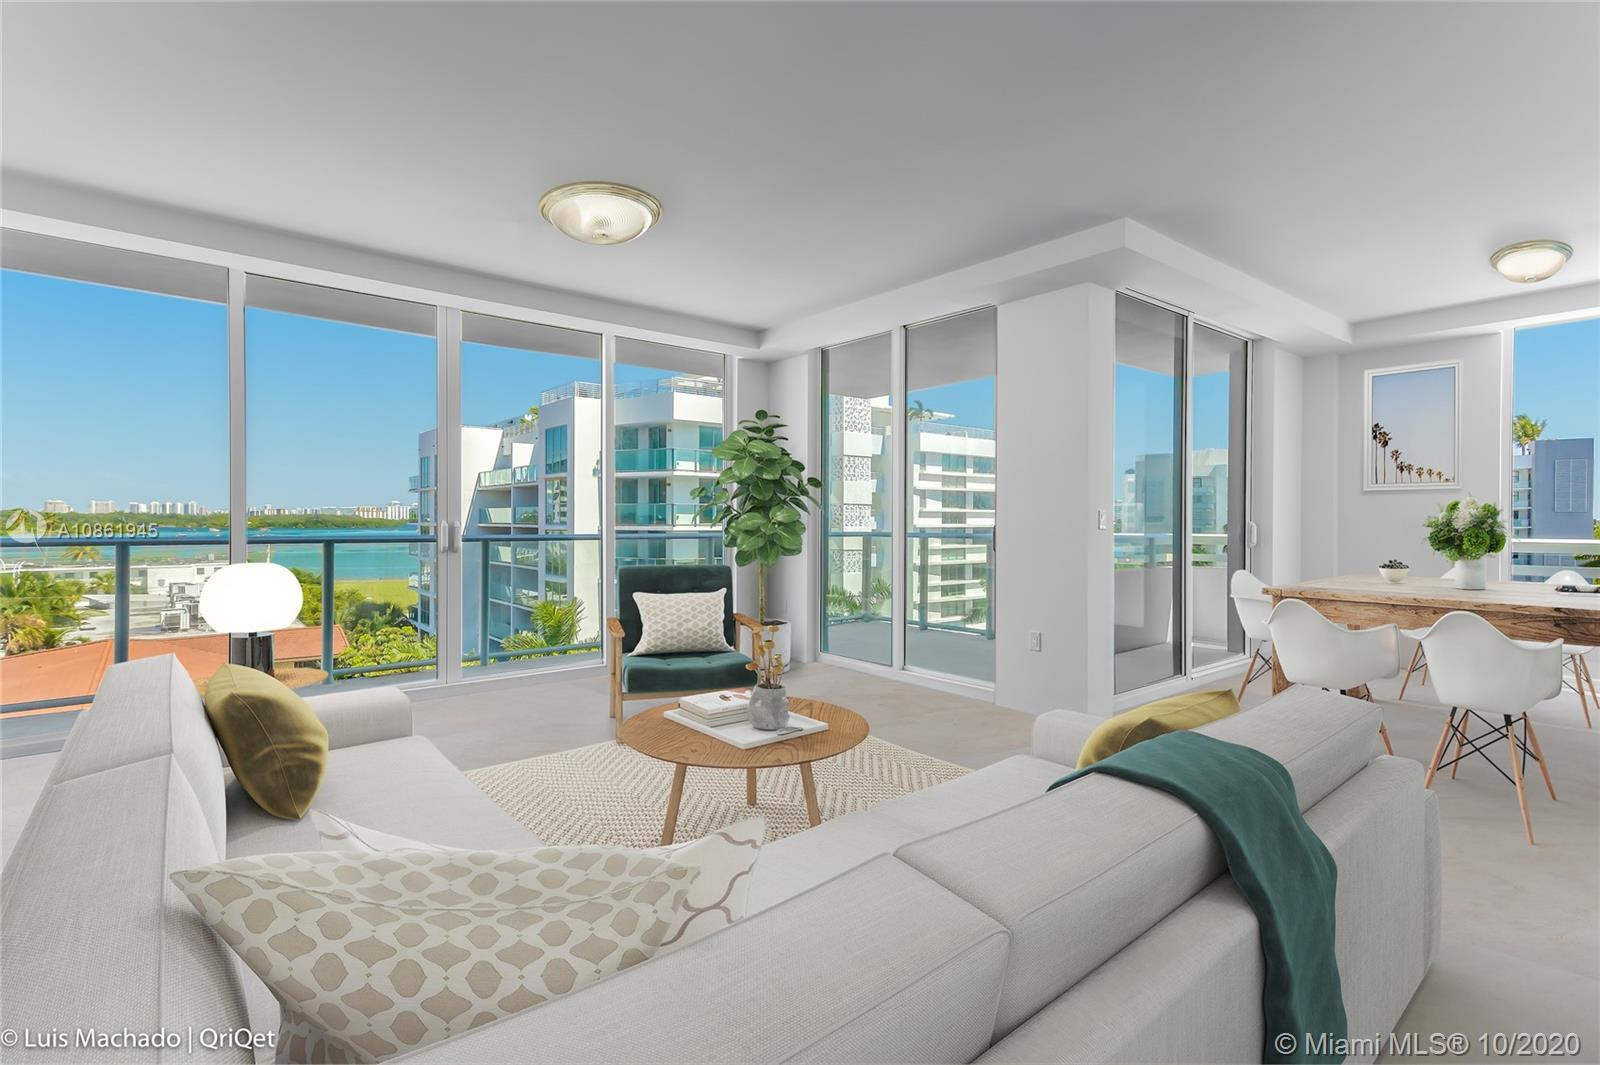 ** ESPECTACULAR / WATER VIEW APARTMENT AT EXCLUSIVE BRAND NEW CONSTRUCTION LE JARDIN BOUTIQUE CONDO IN BAY HARBOR ISLAND ** STUNNING HIGH-END 2 BEDS+ DEN, 2.5 BATHS. LOTS OF NATURAL LIGHTS. MODERN OPEN KITCHEN WITH TOP OF THE LINE FINISHES AND STAINLESS STEEL APPLIANCES. UNIT HAS CAPTIVATING LARGE TERRACE THAT FACES WATER AND CITY VIEWS.  ** ENJOY ALL UNIQUE AMENITIES THIS BOUTIQUE BUILDING HAS TO OFFER, INCLUDING PRIME LOCATION NEAR: BAL HARBOUR SHOPS, SUNNY ISLES, BAL HARBOUR AND MORE **